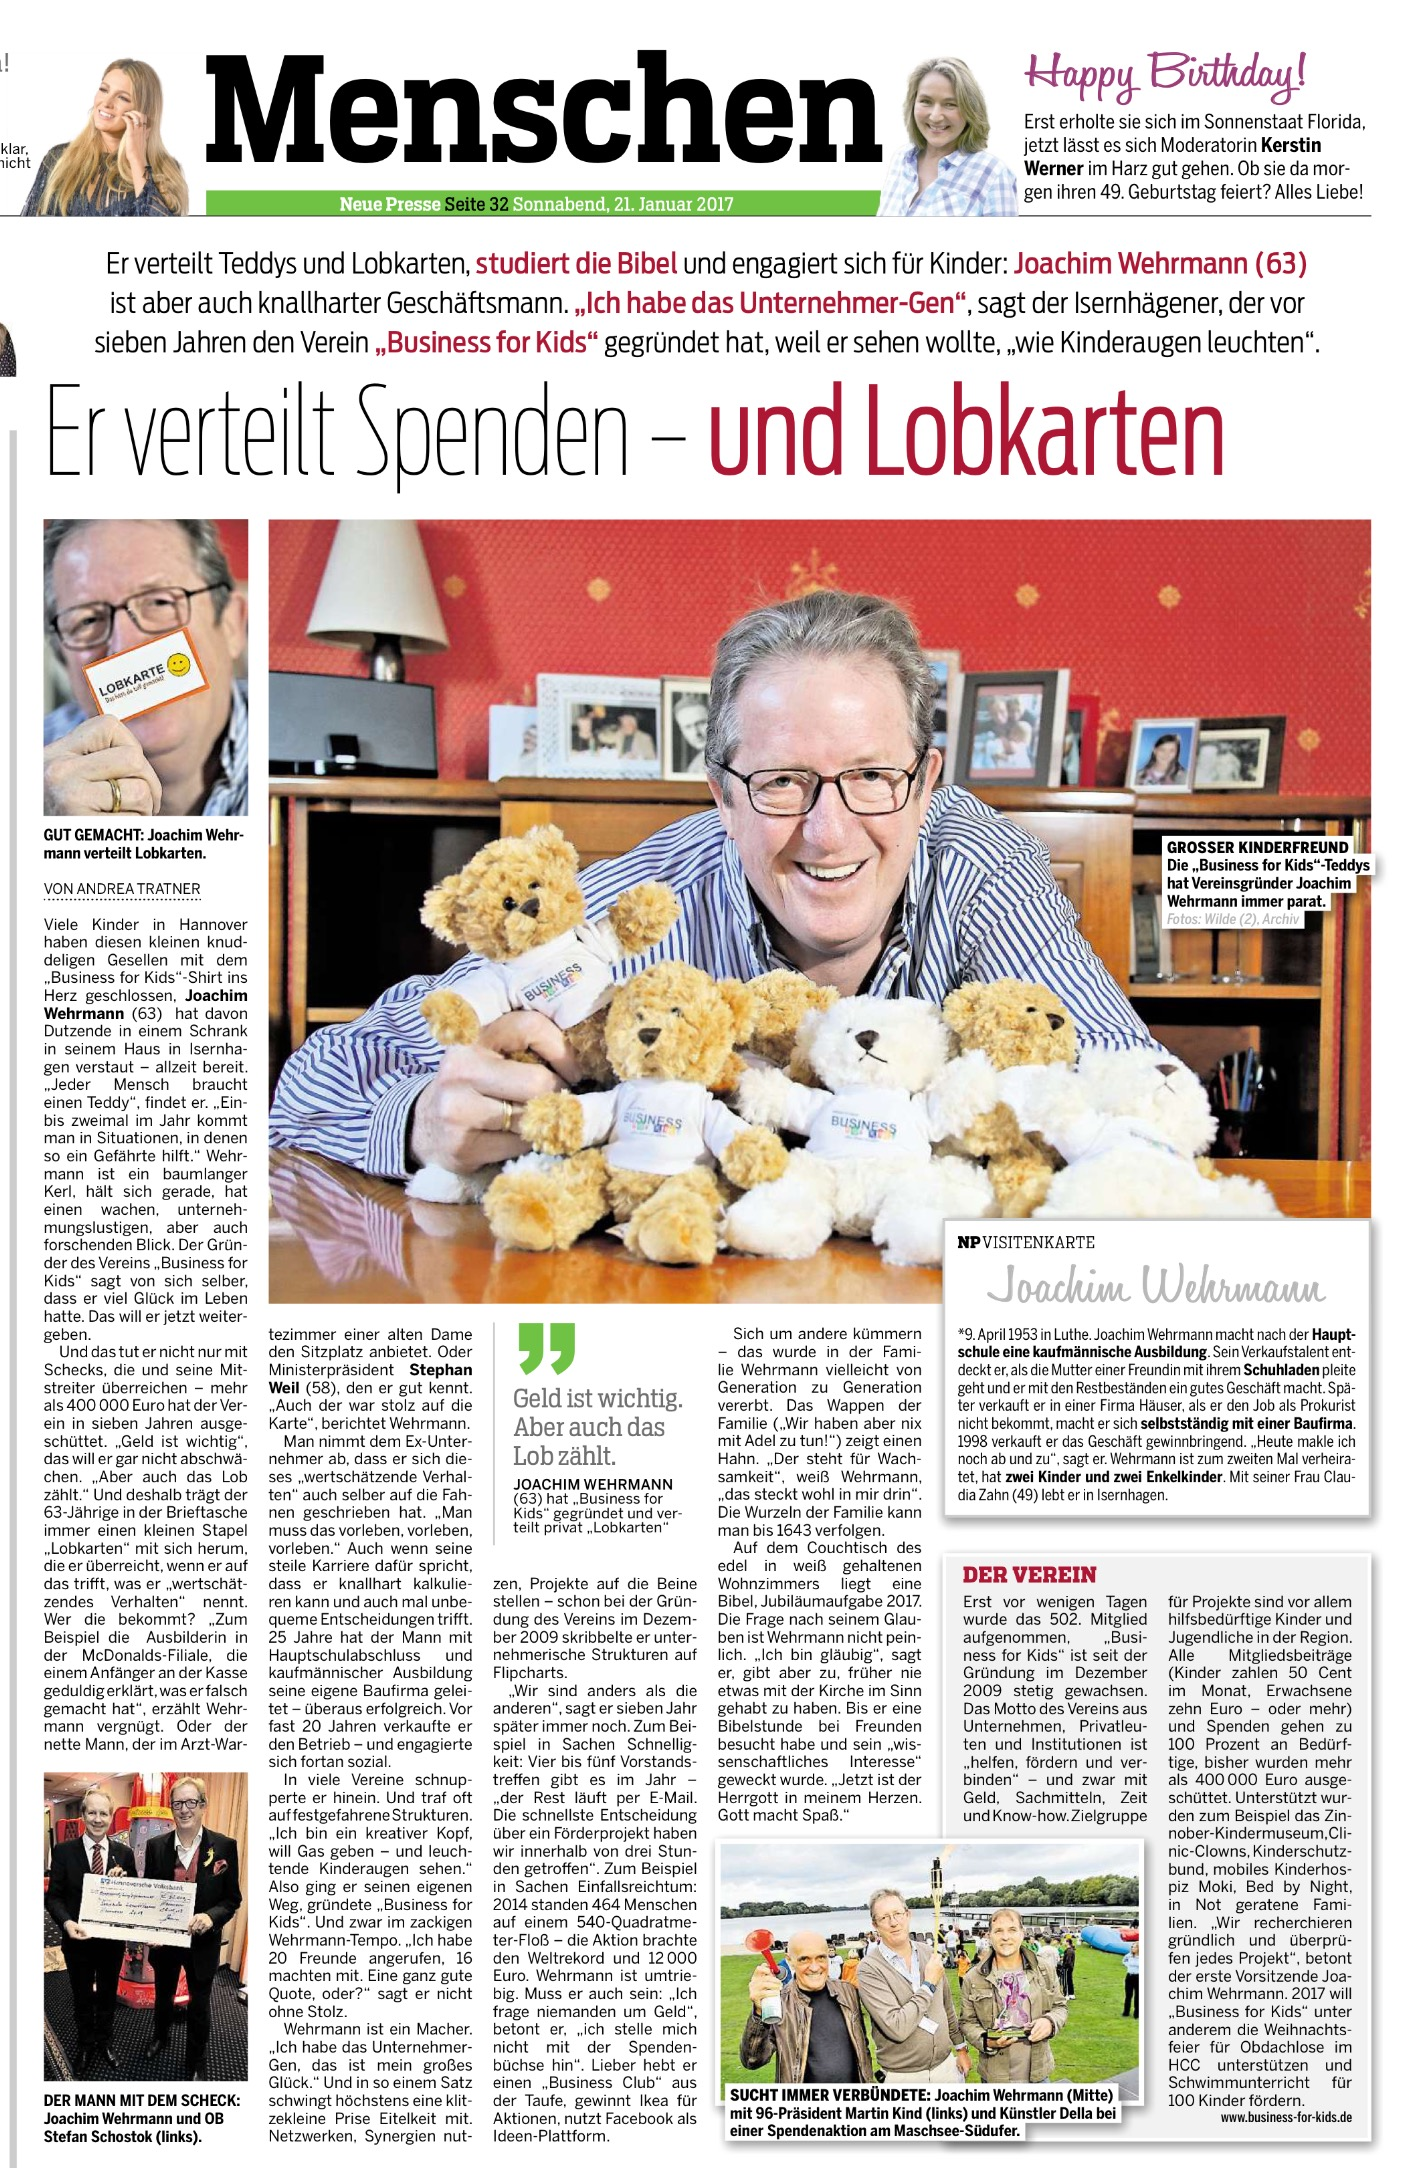 Neue Presse Joachim Wehrmann Business for Kids e.V.